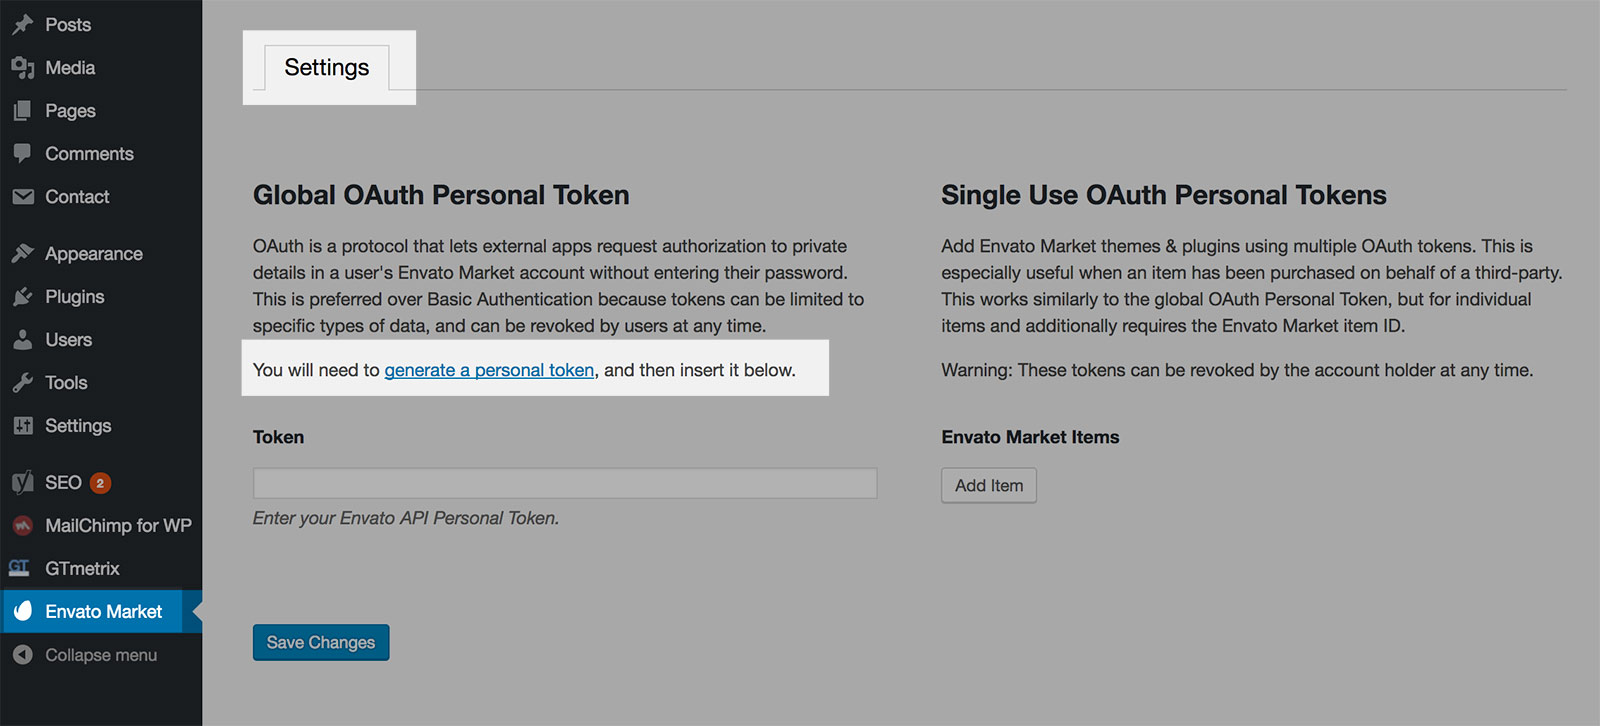 Click on the link to generate a personal token